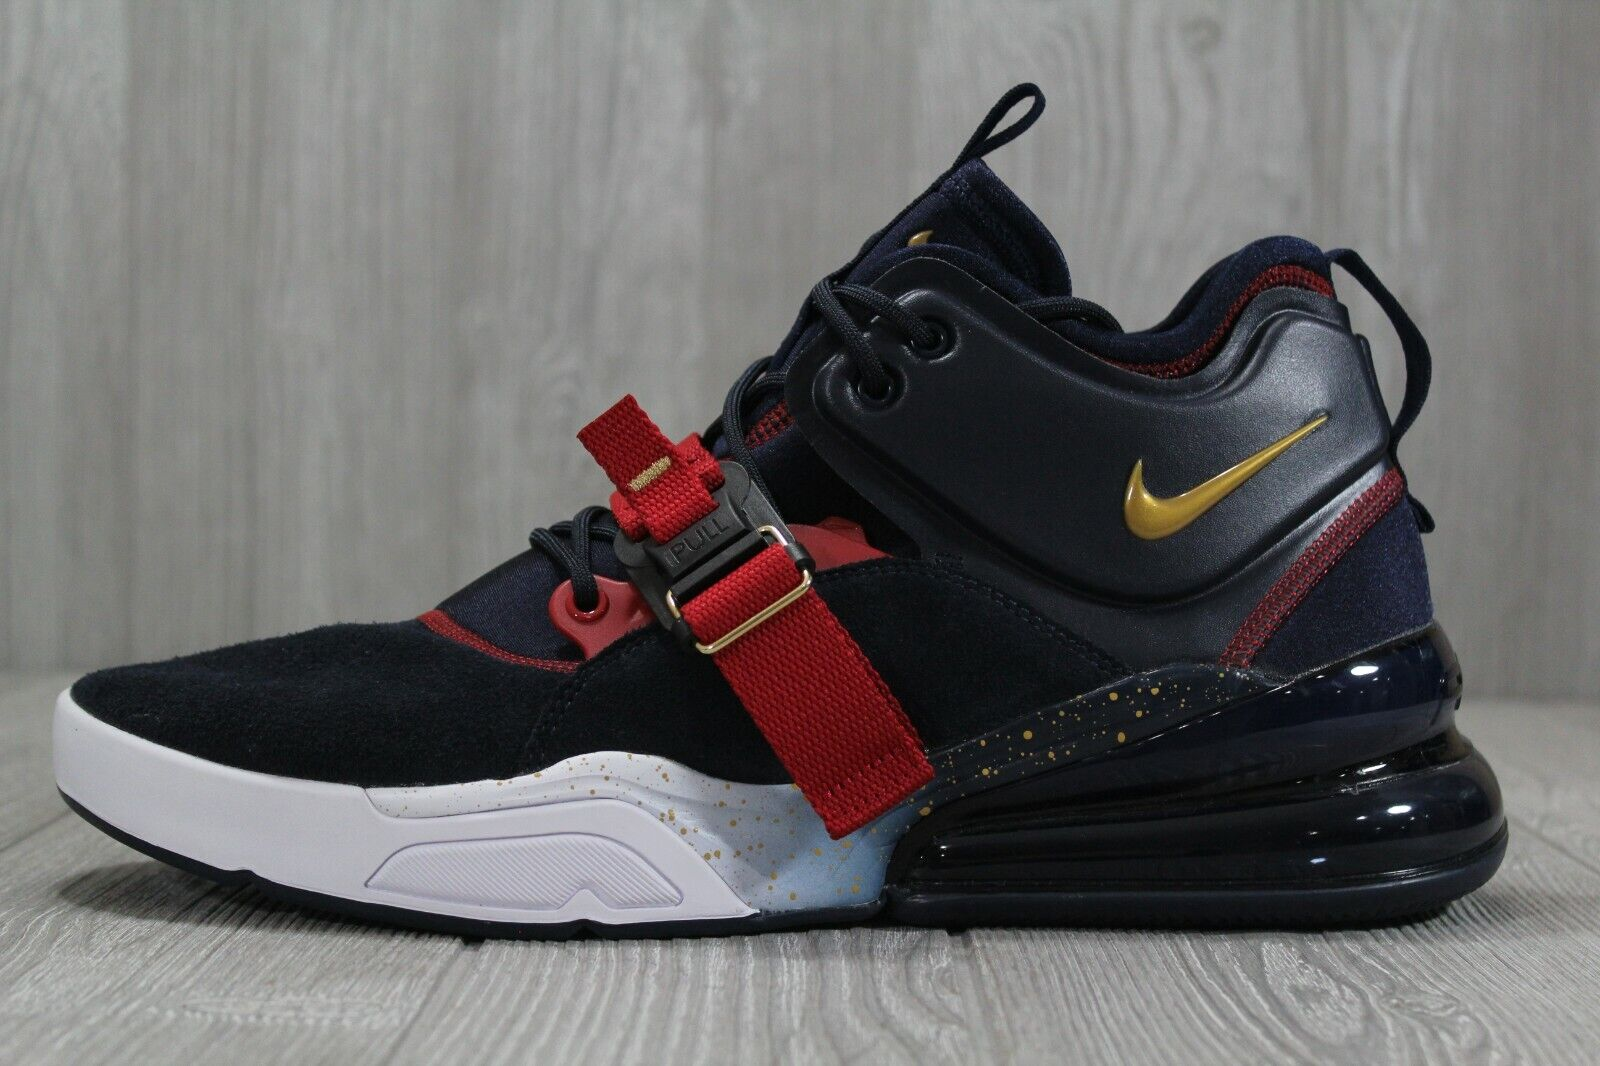 38 Nike Air Force 270 Olympics USA Obsidian Mens shoes Size 8.5-15 AH6772-400